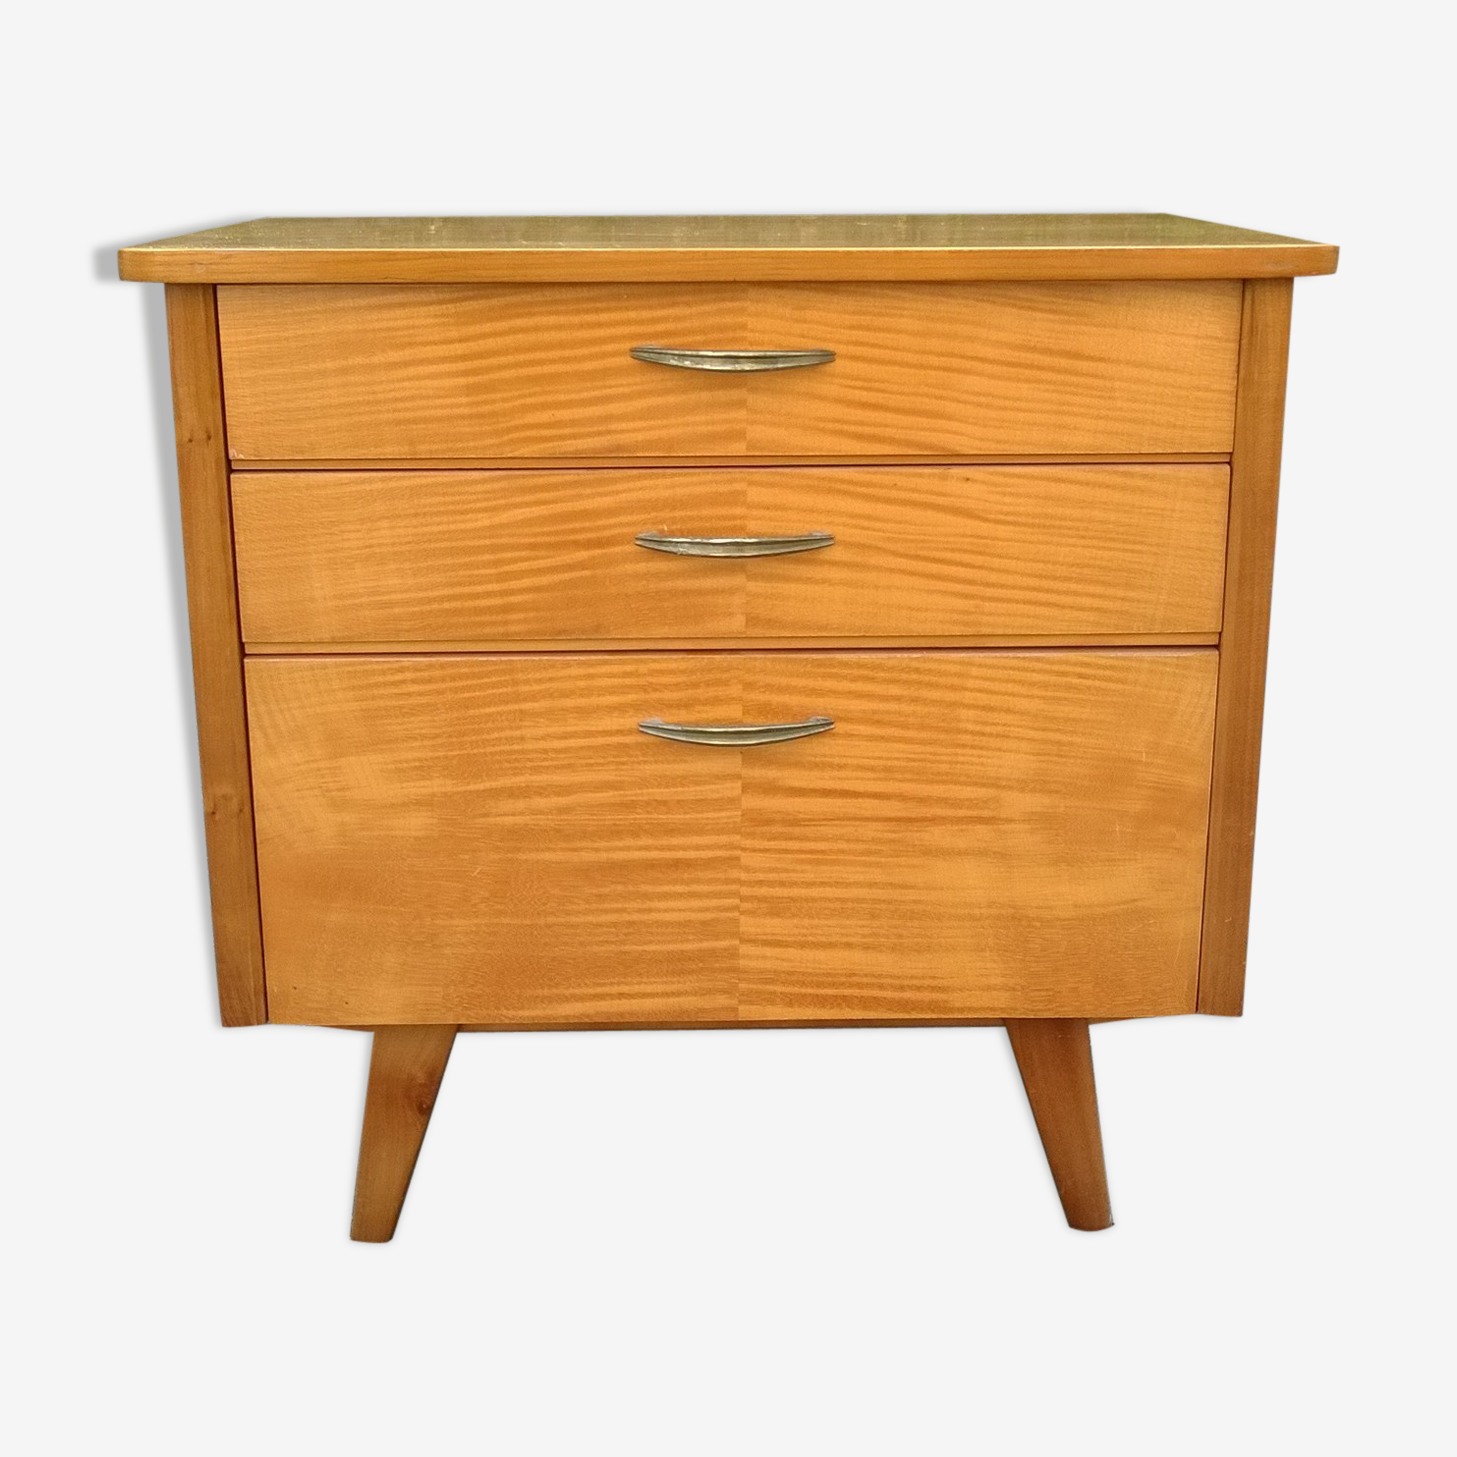 Chest of drawers 60 years